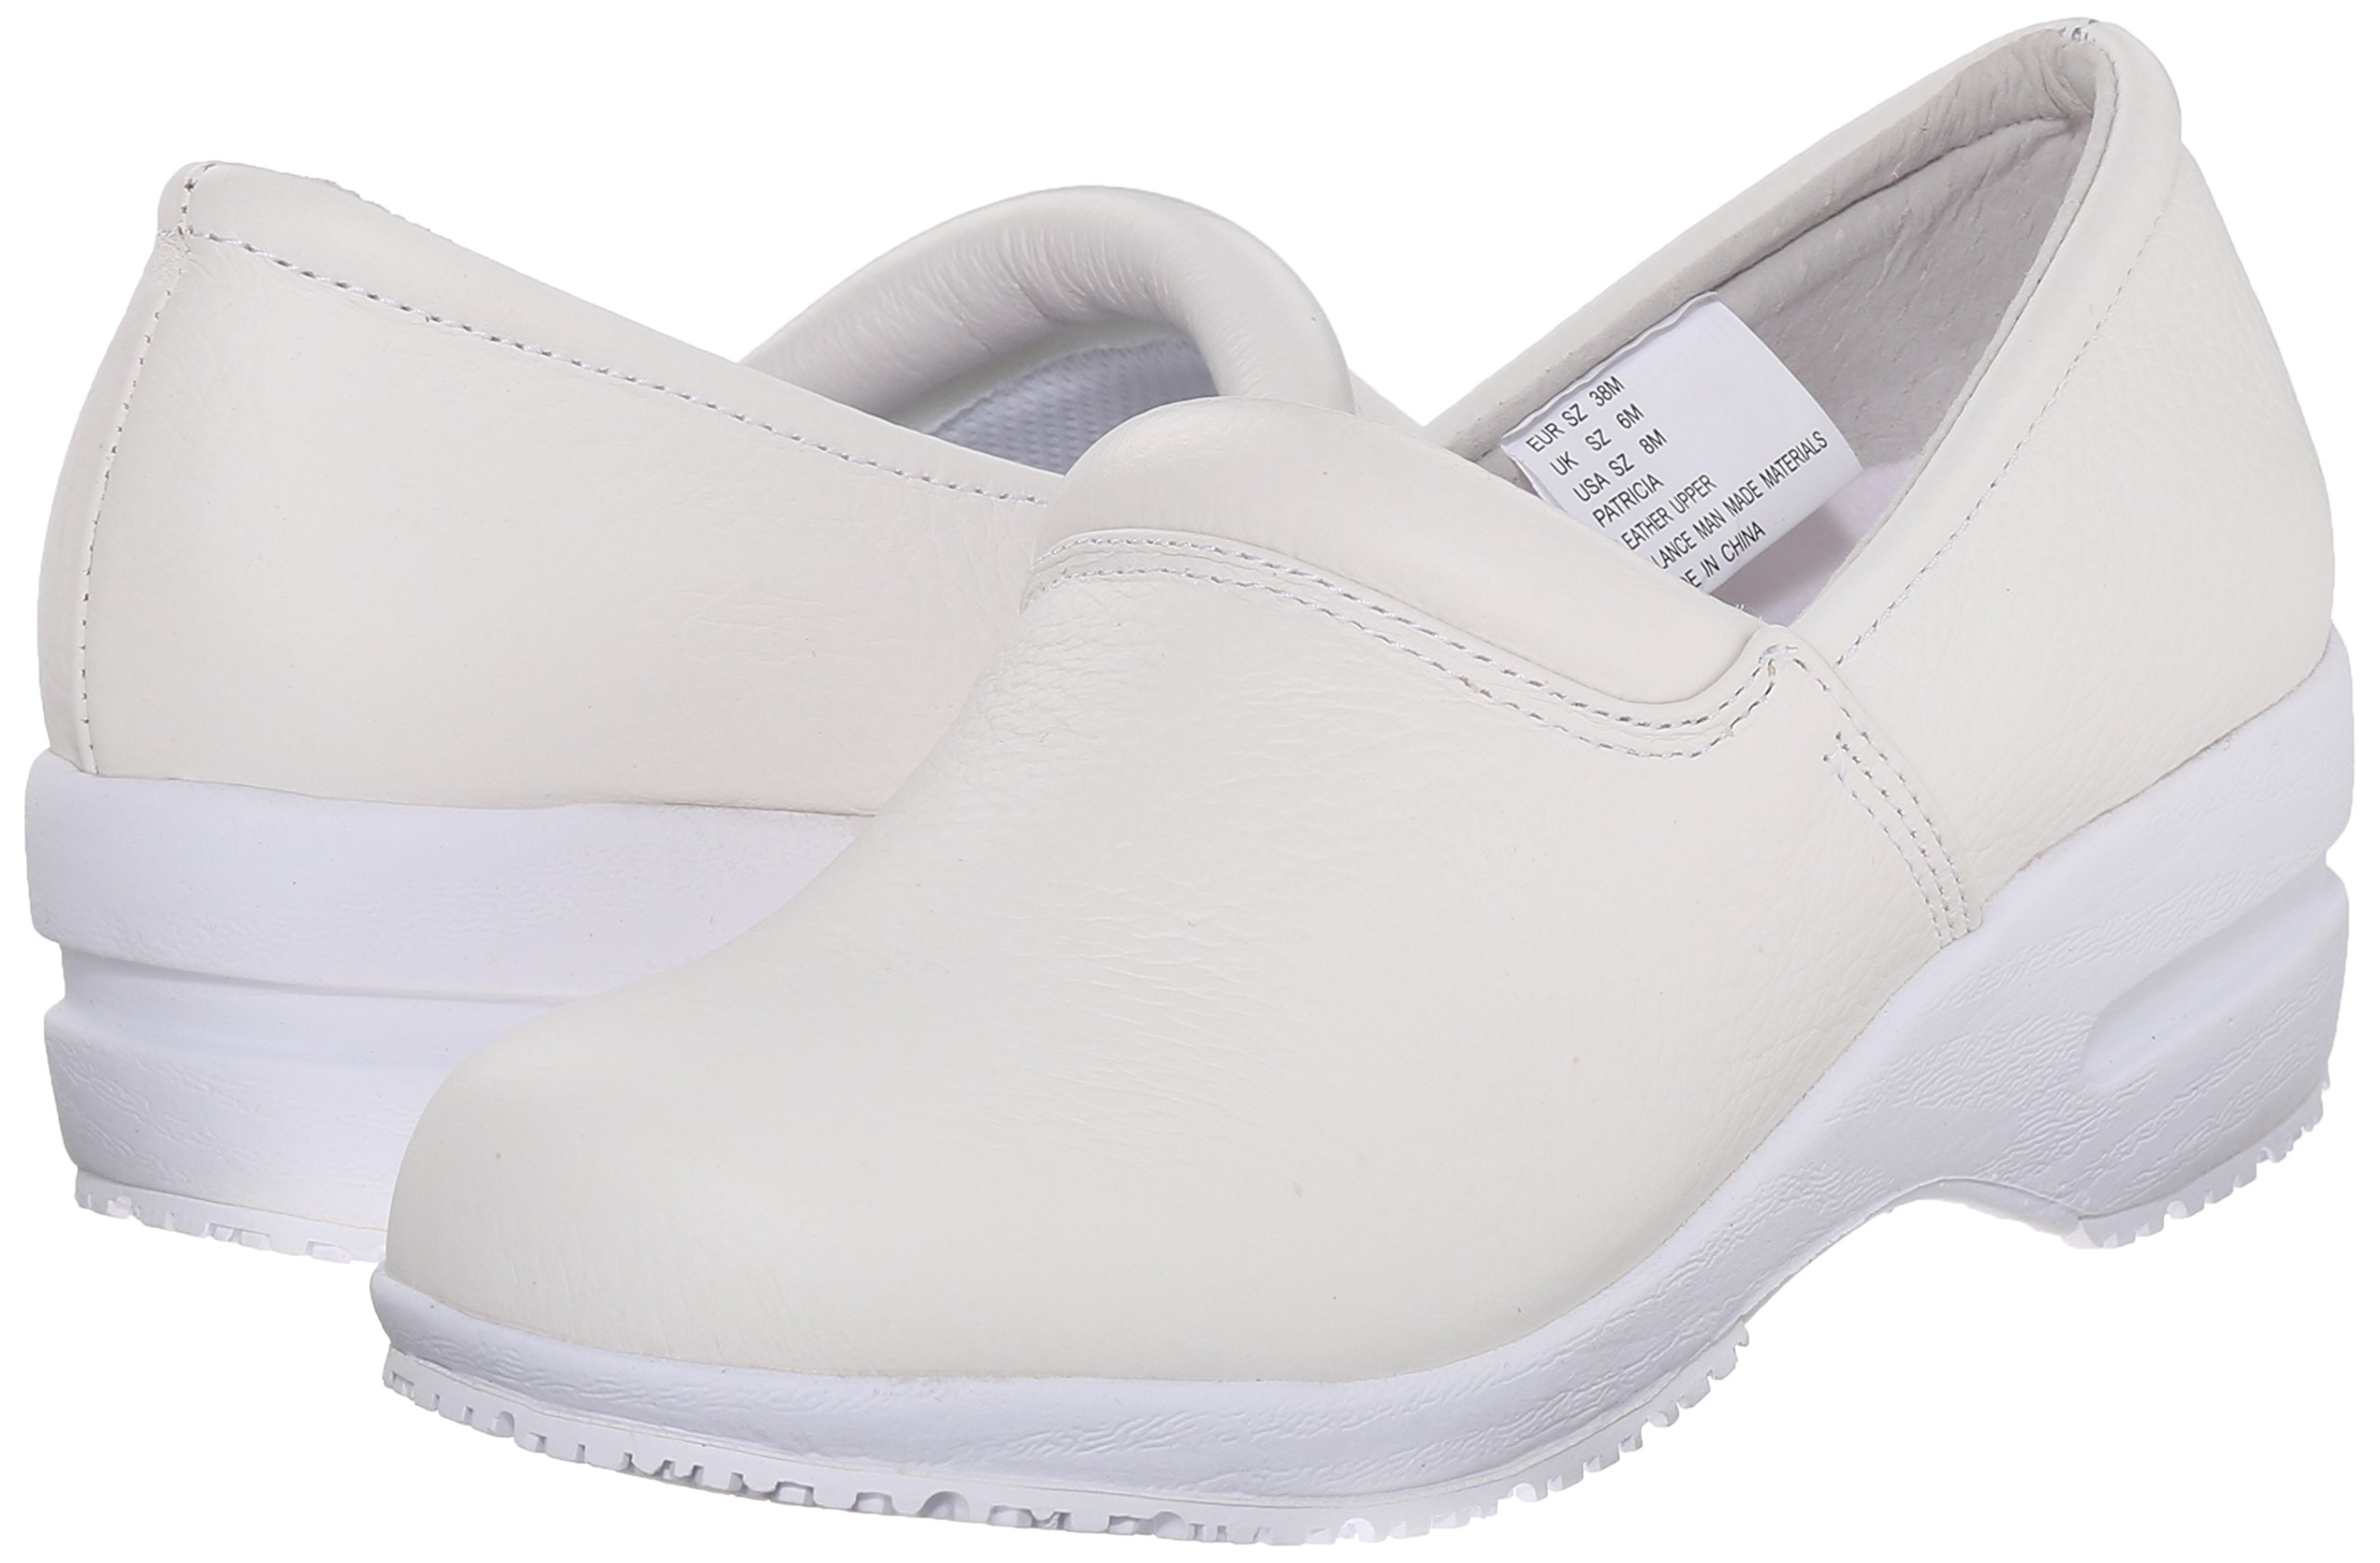 Cherokee Women's Patricia Work Shoe, White, 8 M US by Cherokee (Image #6)